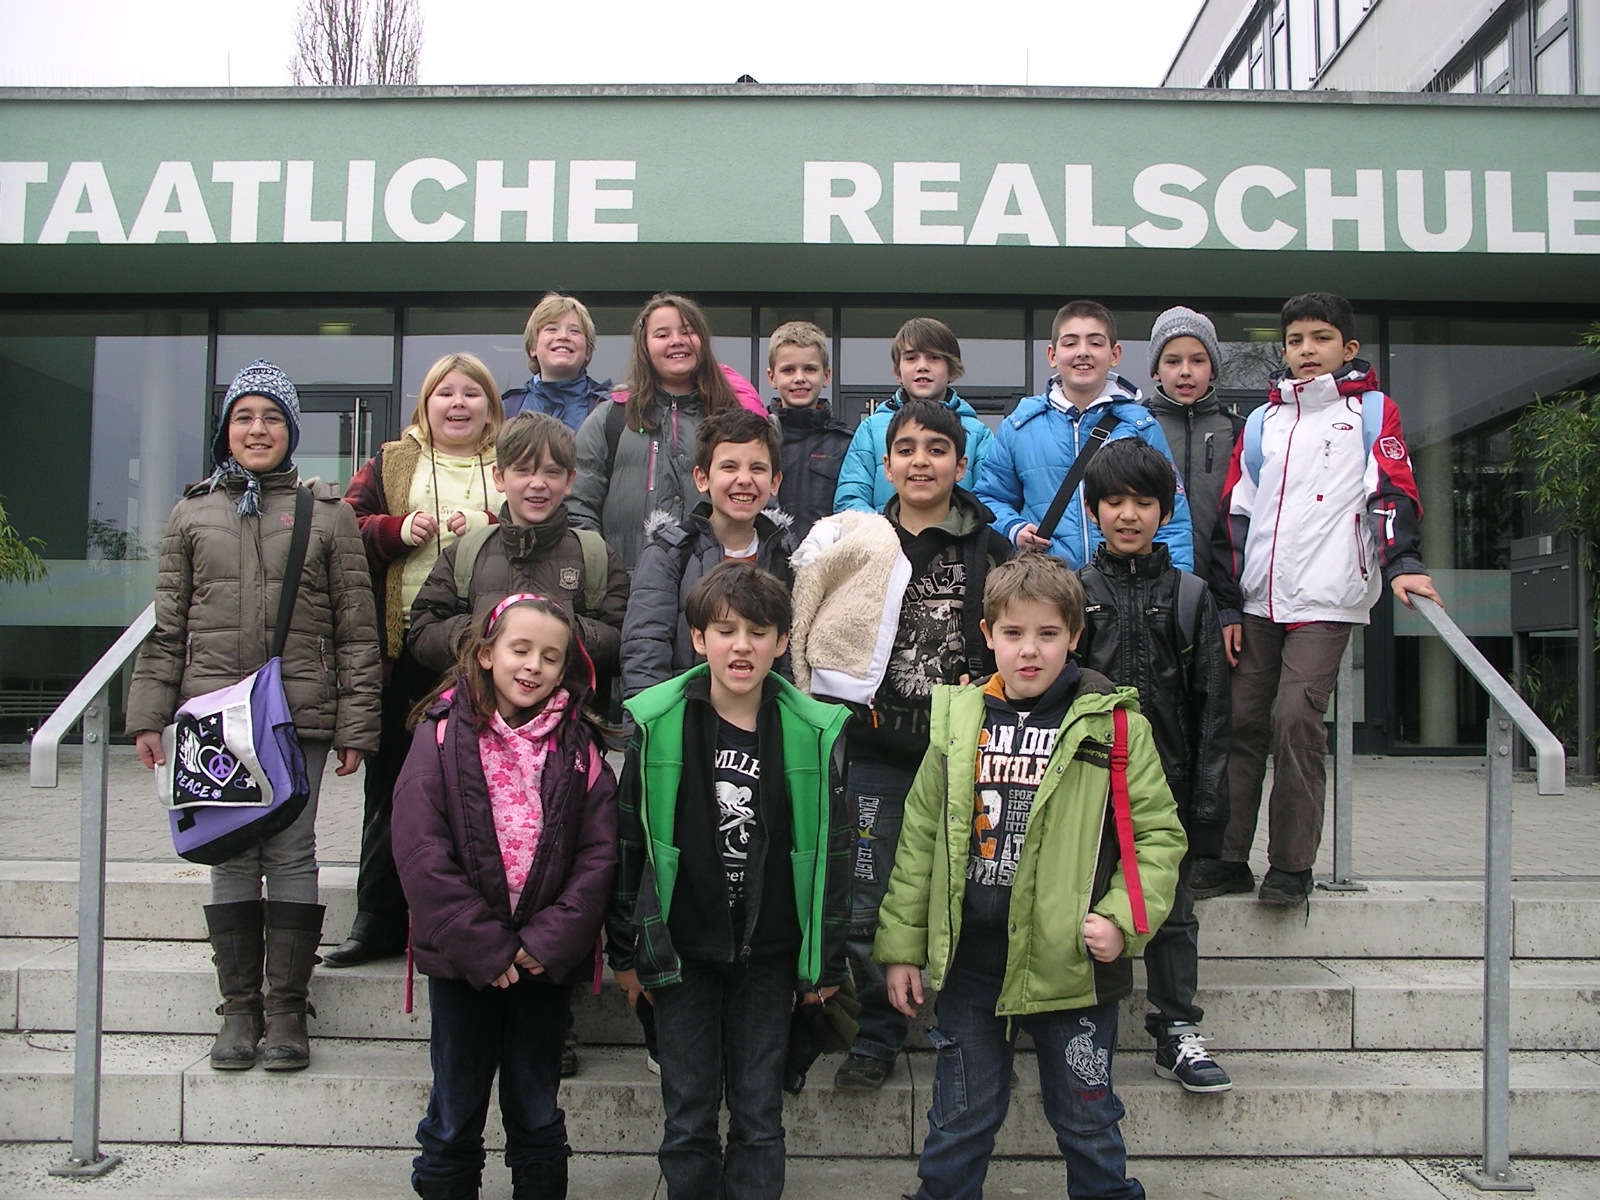 Realschule